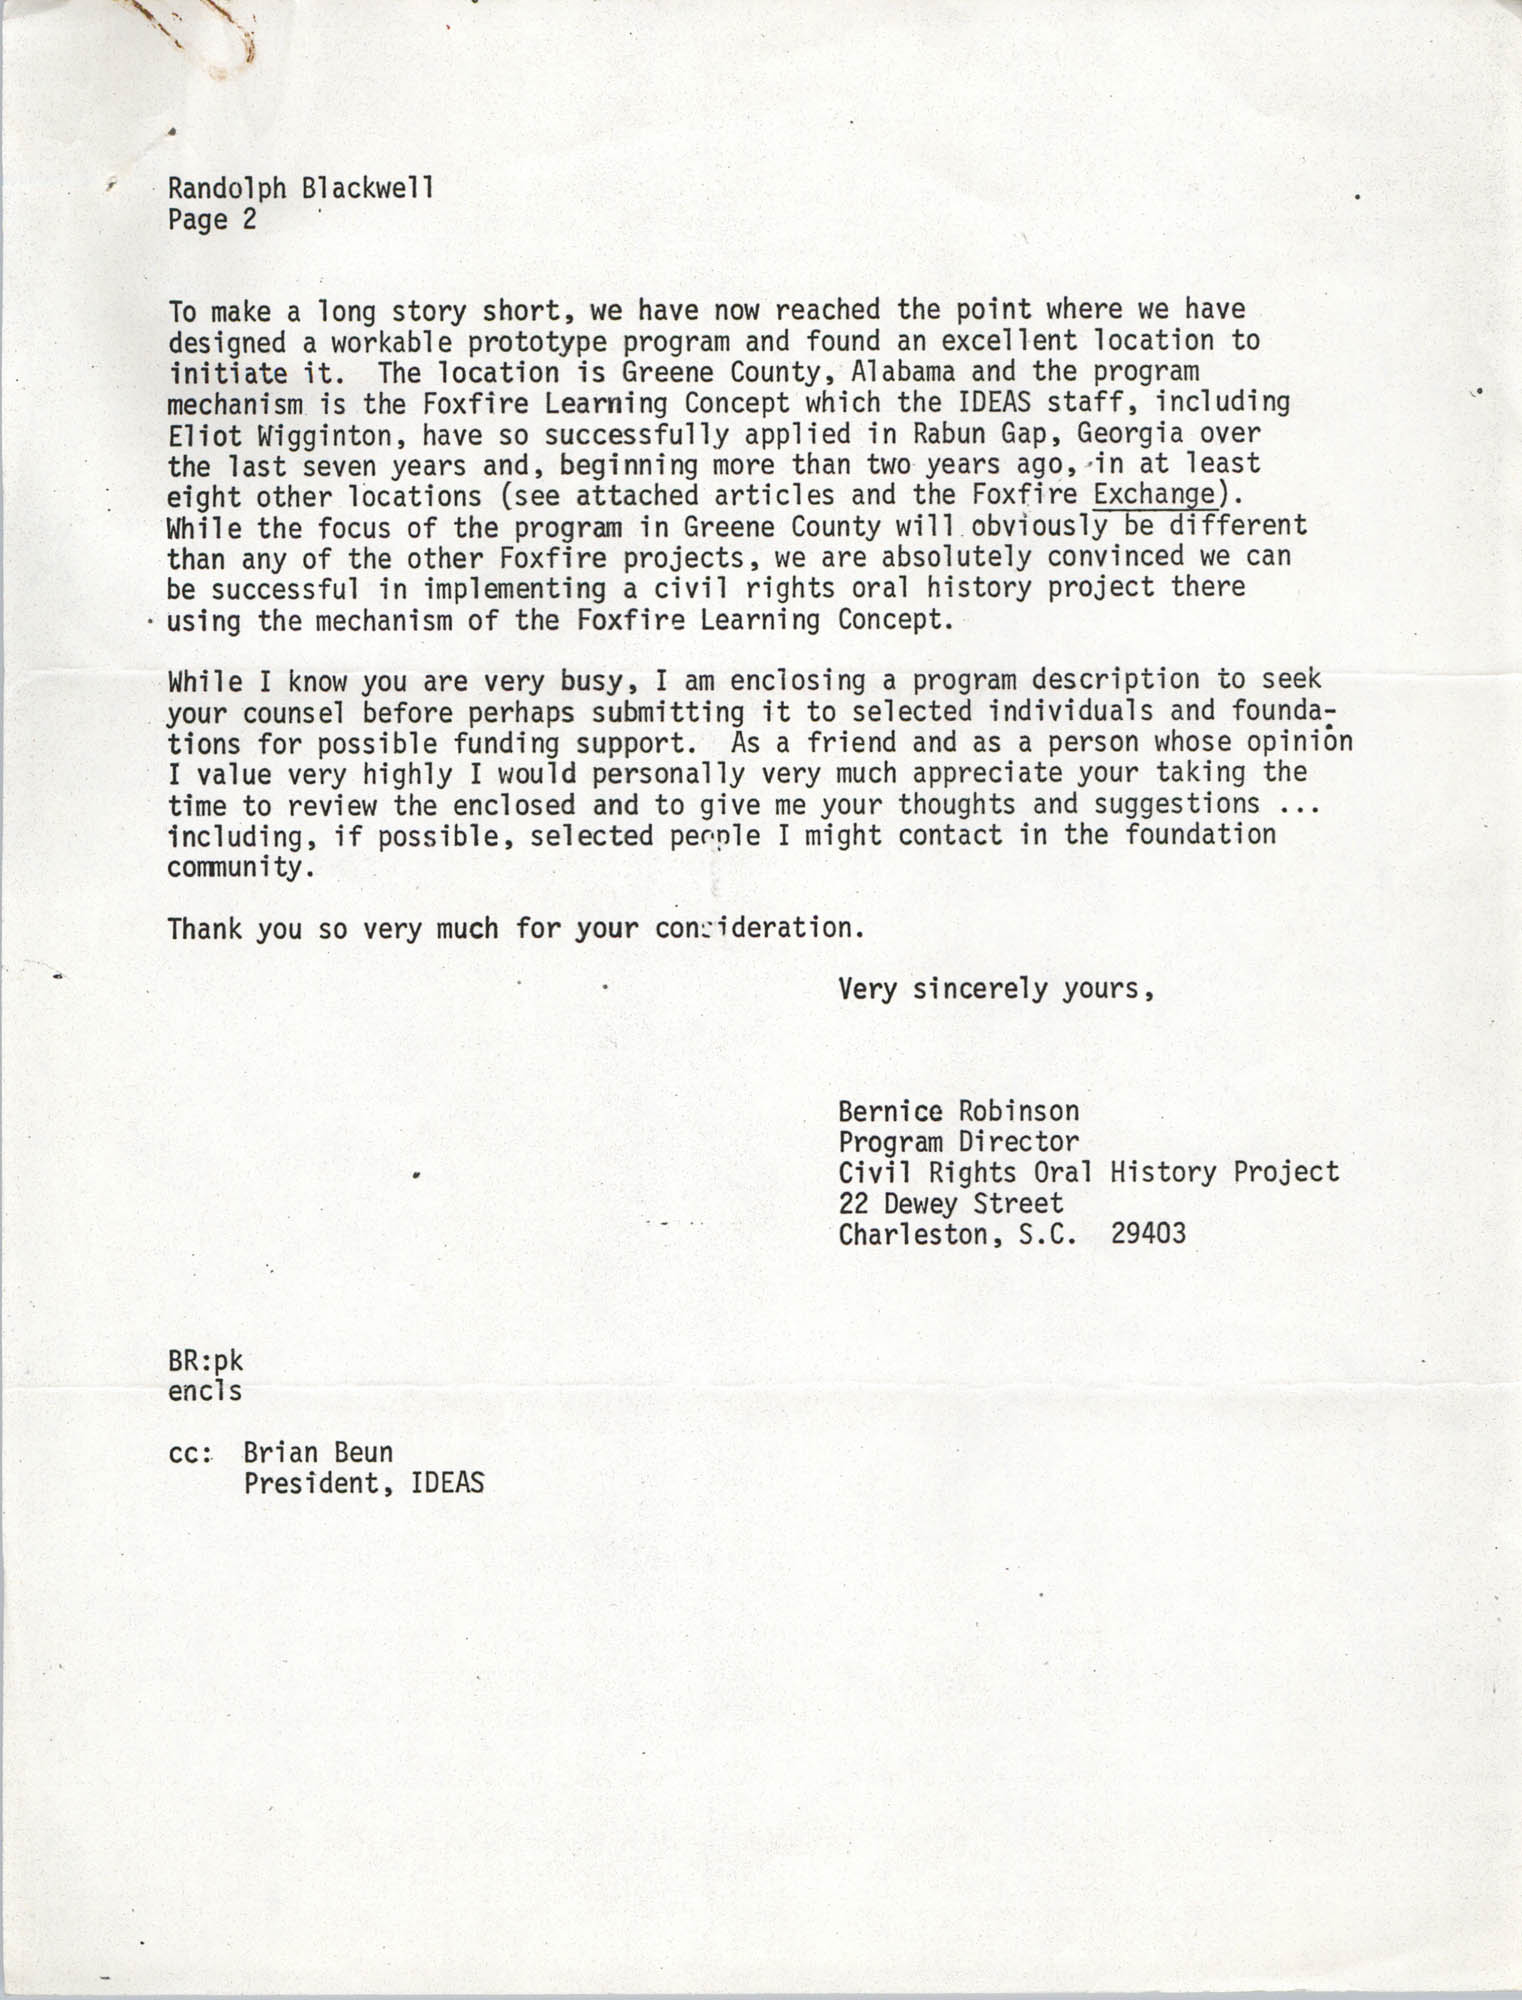 Letter from Bernice Robinson to Randolph Blackwell, May 7, 1973, Page 2